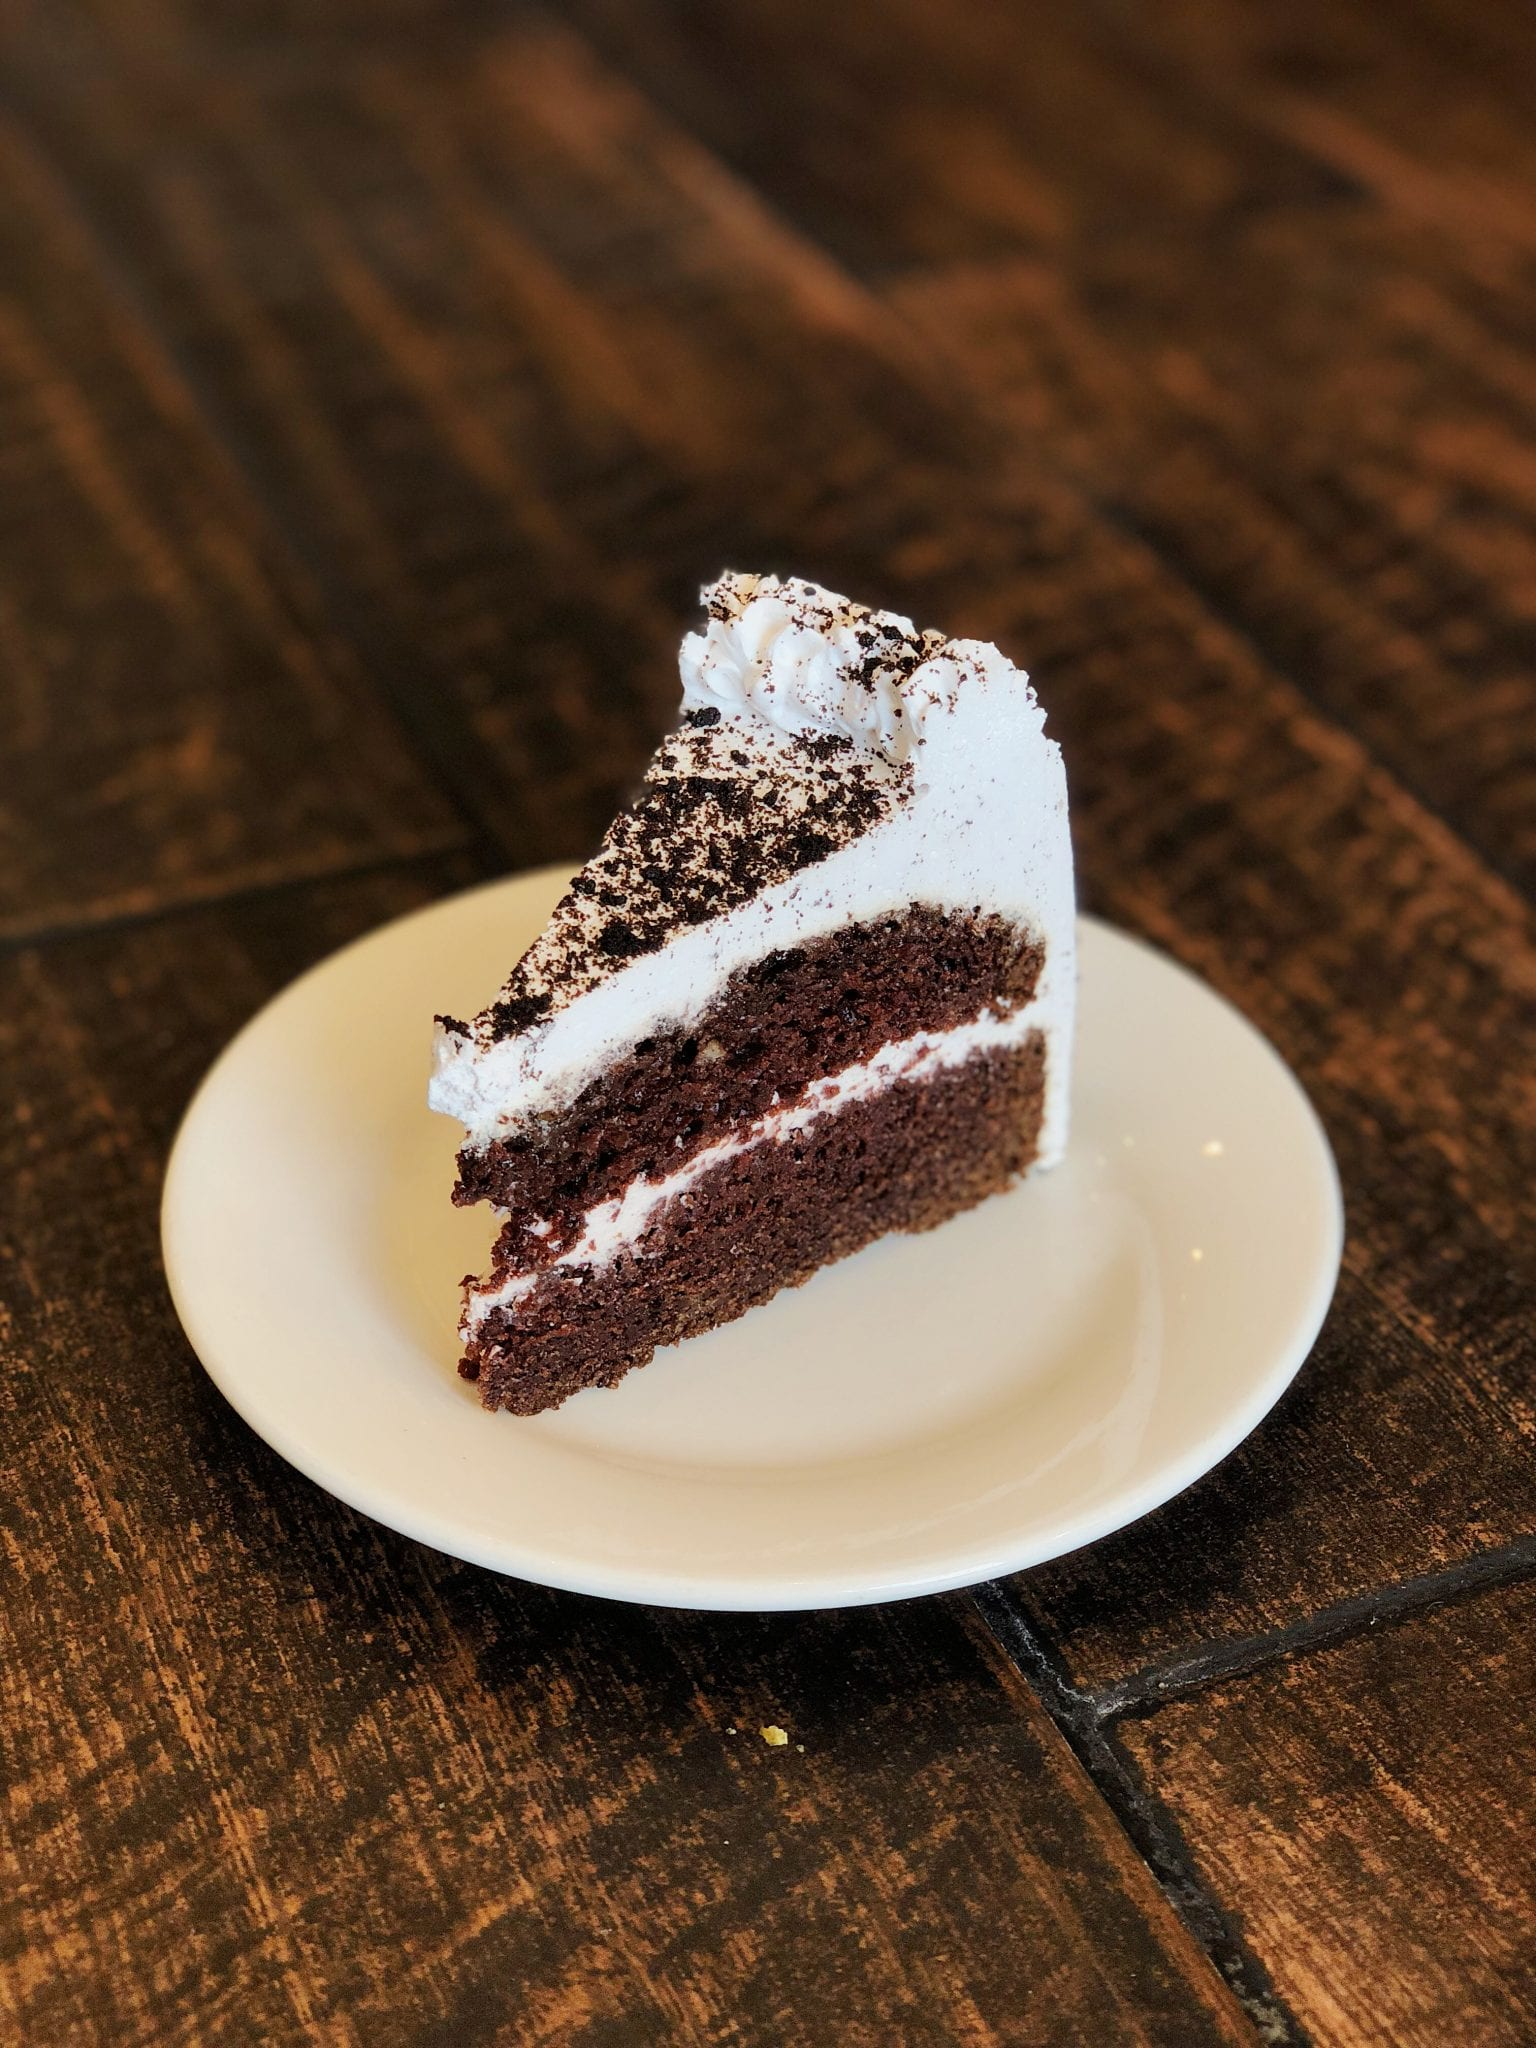 Oreo cake from Blossom Vegan